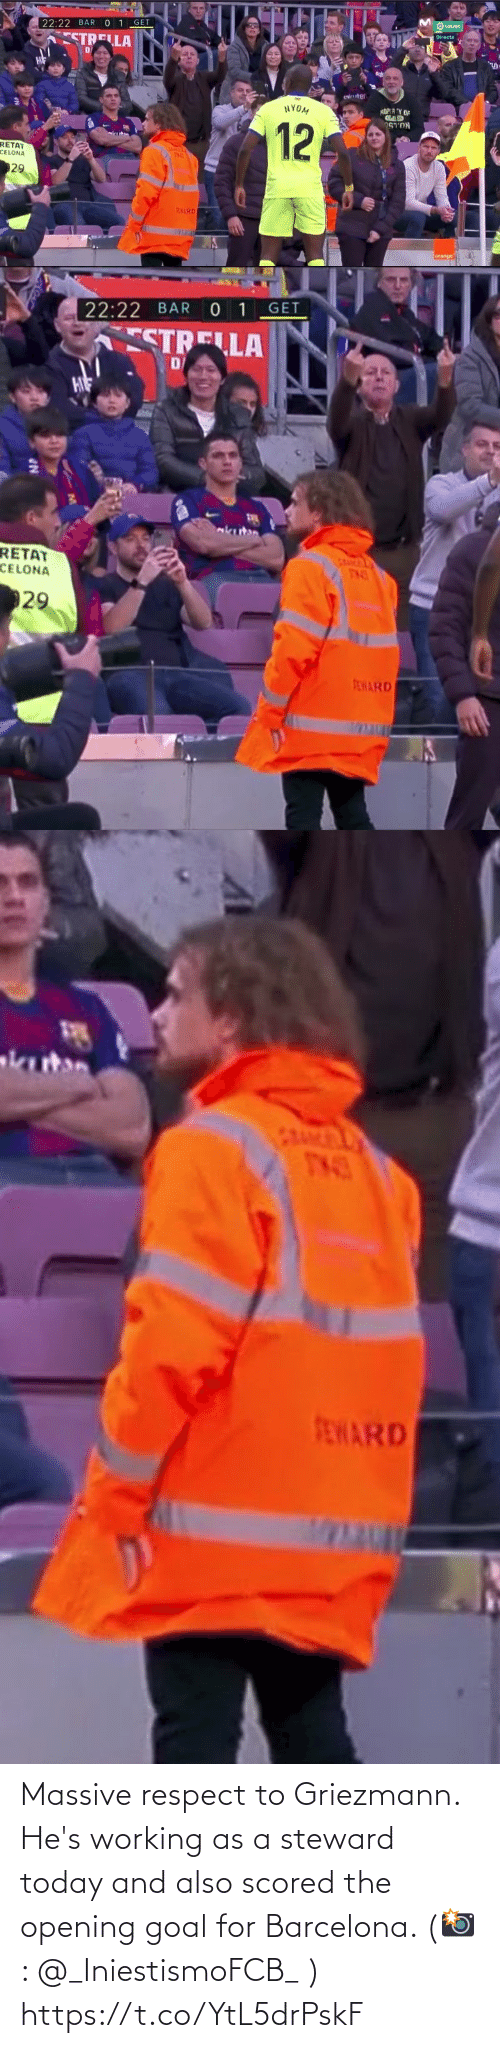 working: Massive respect to Griezmann. He's working as a steward today and also scored the opening goal for Barcelona.   (📸: @_IniestismoFCB_ ) https://t.co/YtL5drPskF